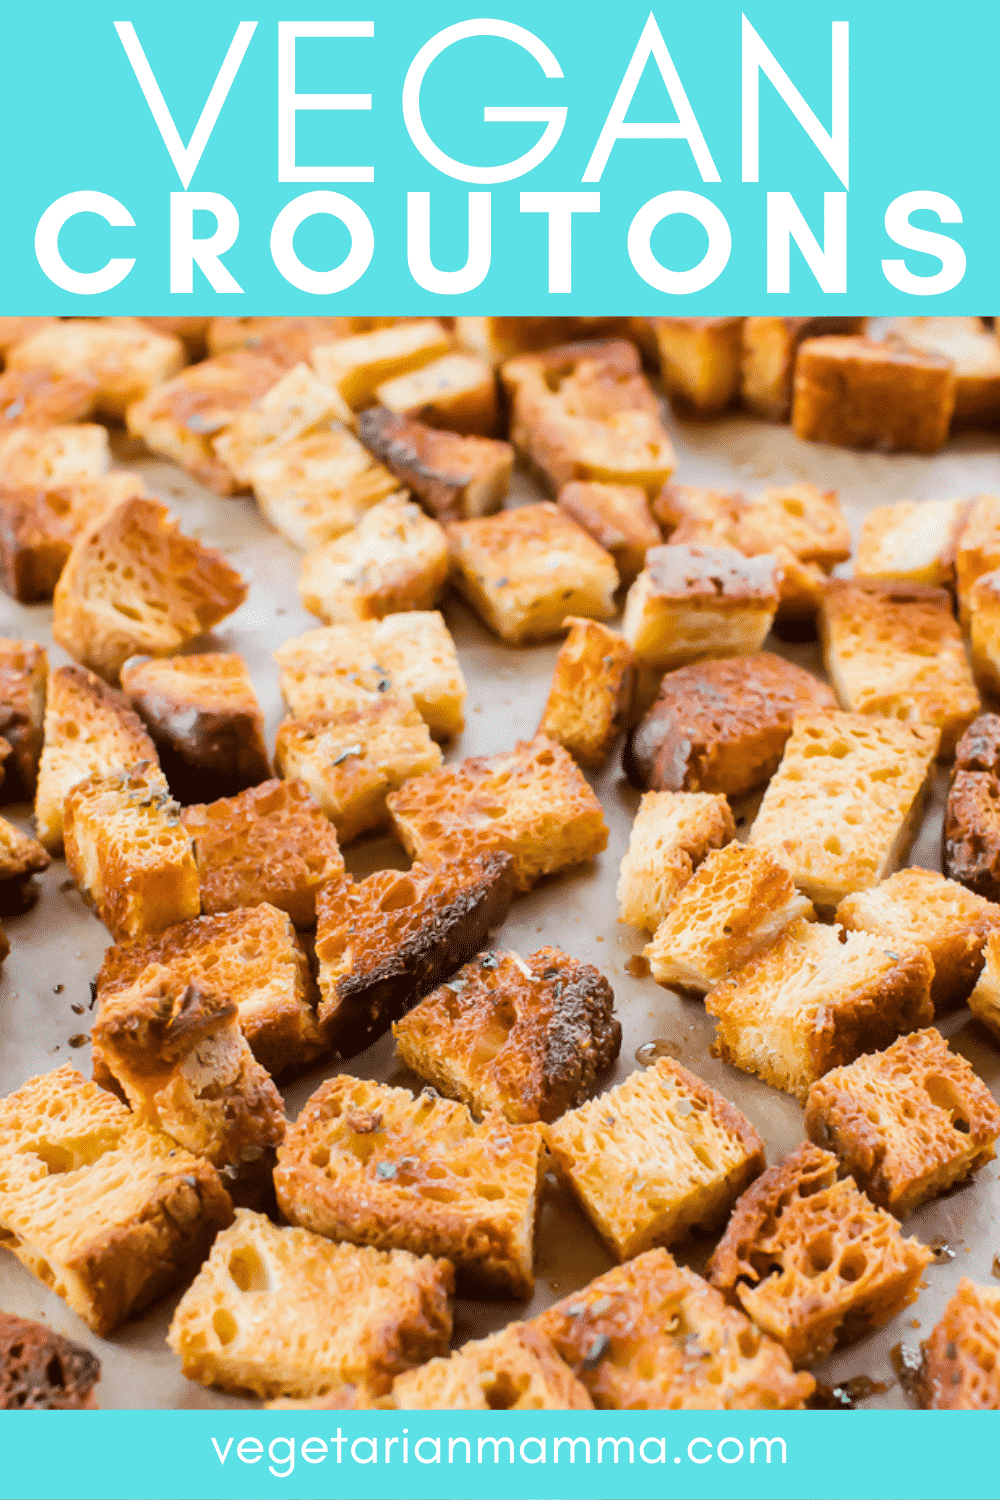 Vegan Croutons are the crunchy piece your favorite soup or salad is missing! You only need 5 pantry staples to whip up these homemade croutons. #vegancroutons #homemadecroutons